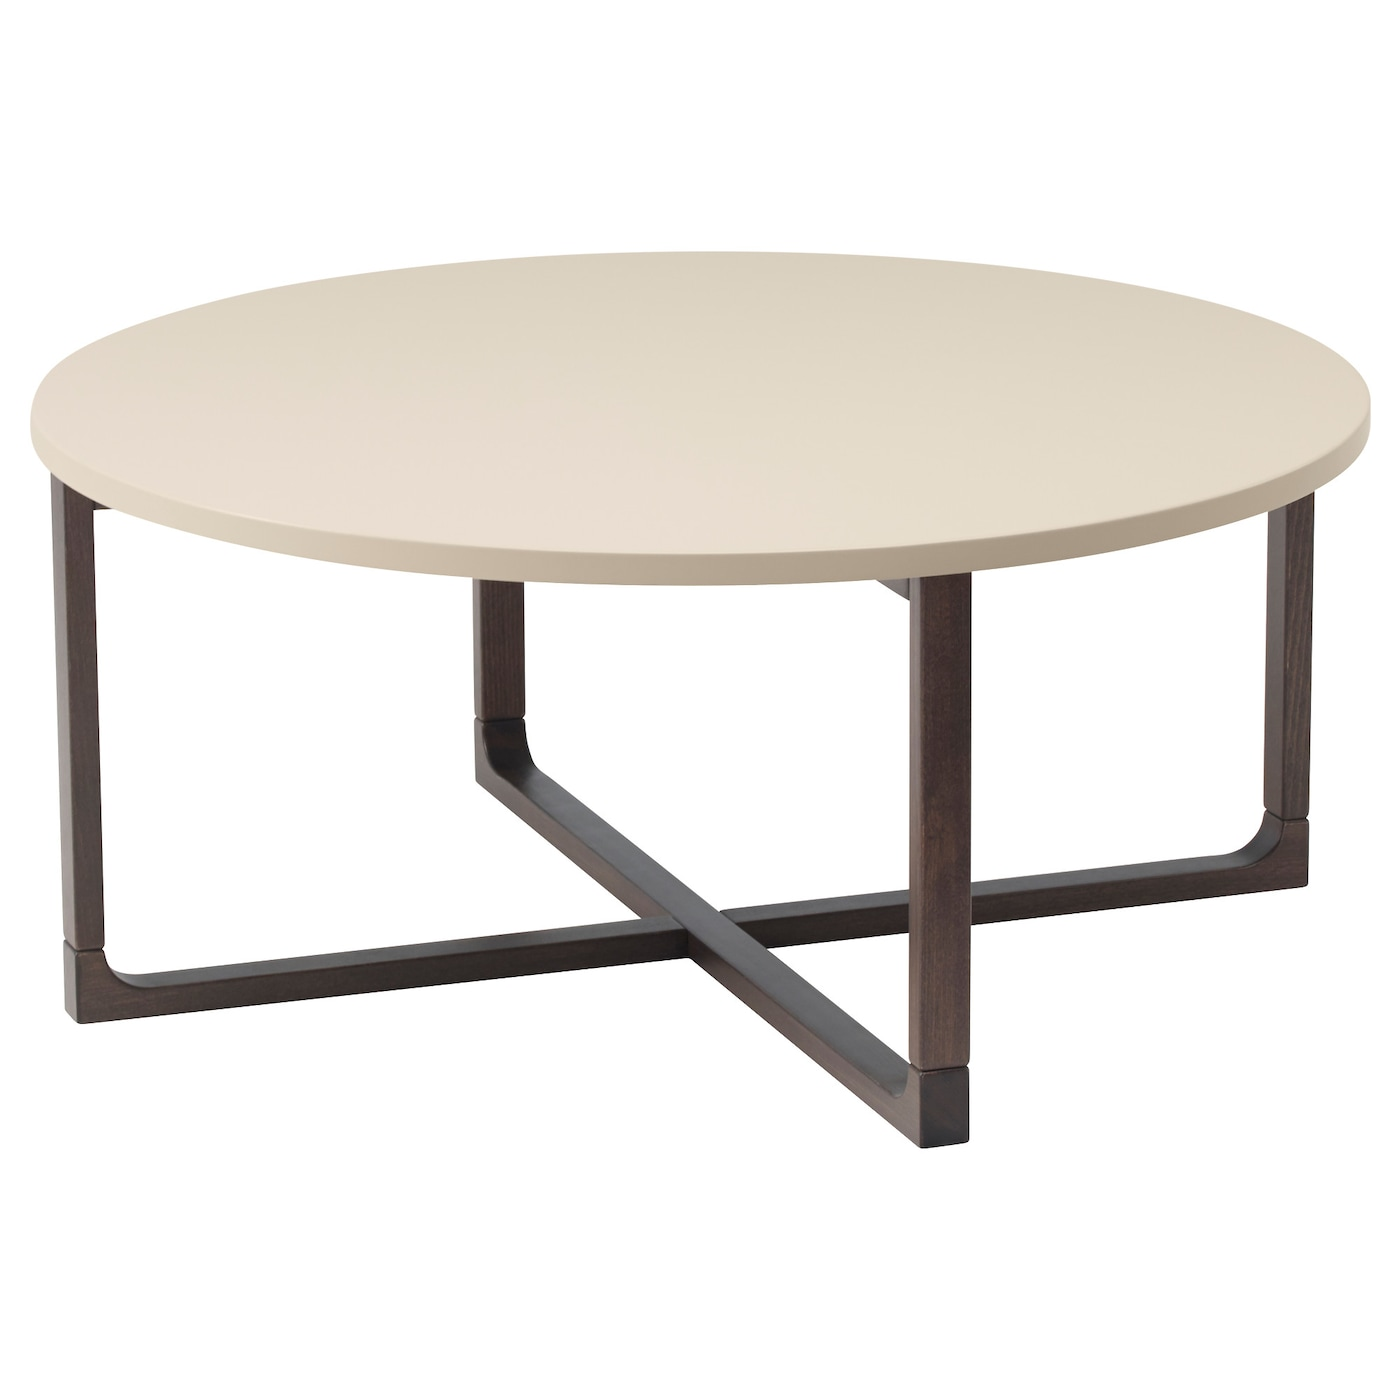 IKEA RISSNA coffee table The high-gloss surfaces reflect light and give a vibrant look.